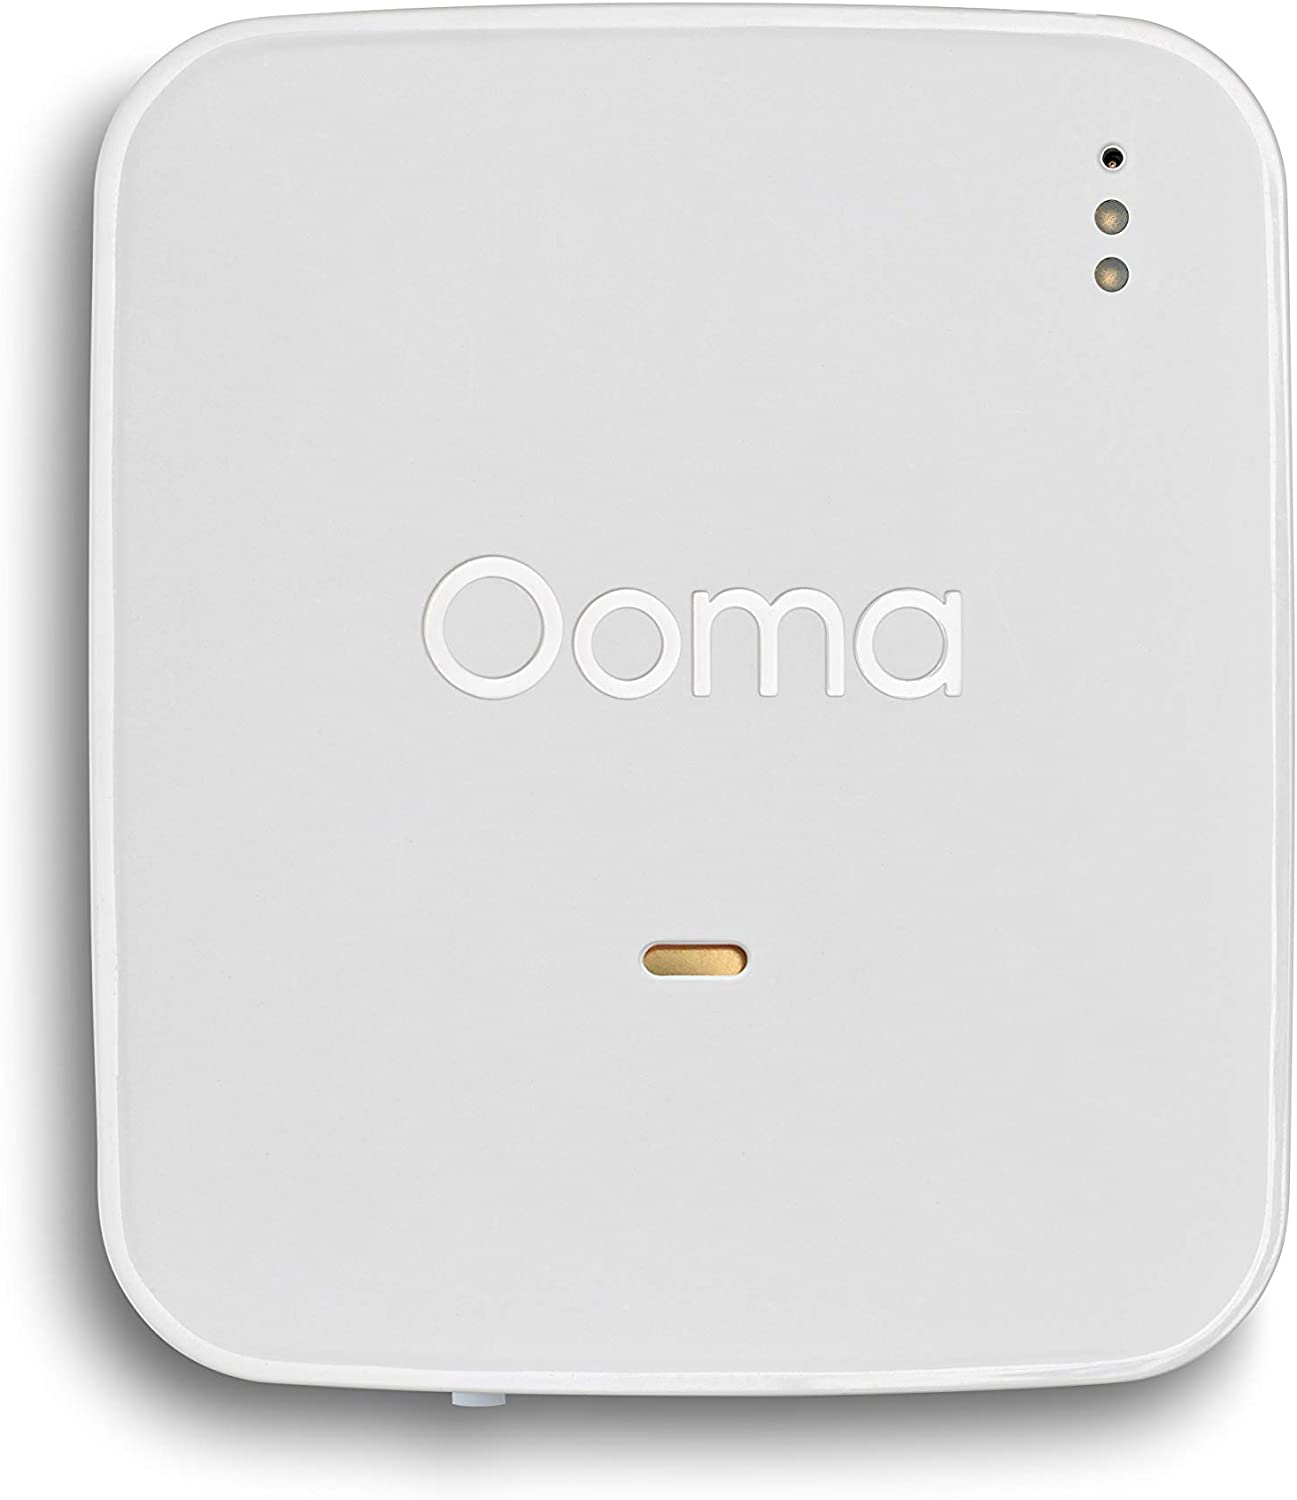 Ooma Siren, Works with Ooma Smart Home Security. No Contracts and Free self-Monitor Plan. Optional Professional Monitoring, Motion, keypad, Door/Window, Water Sensor, and Garage Door Sensor.